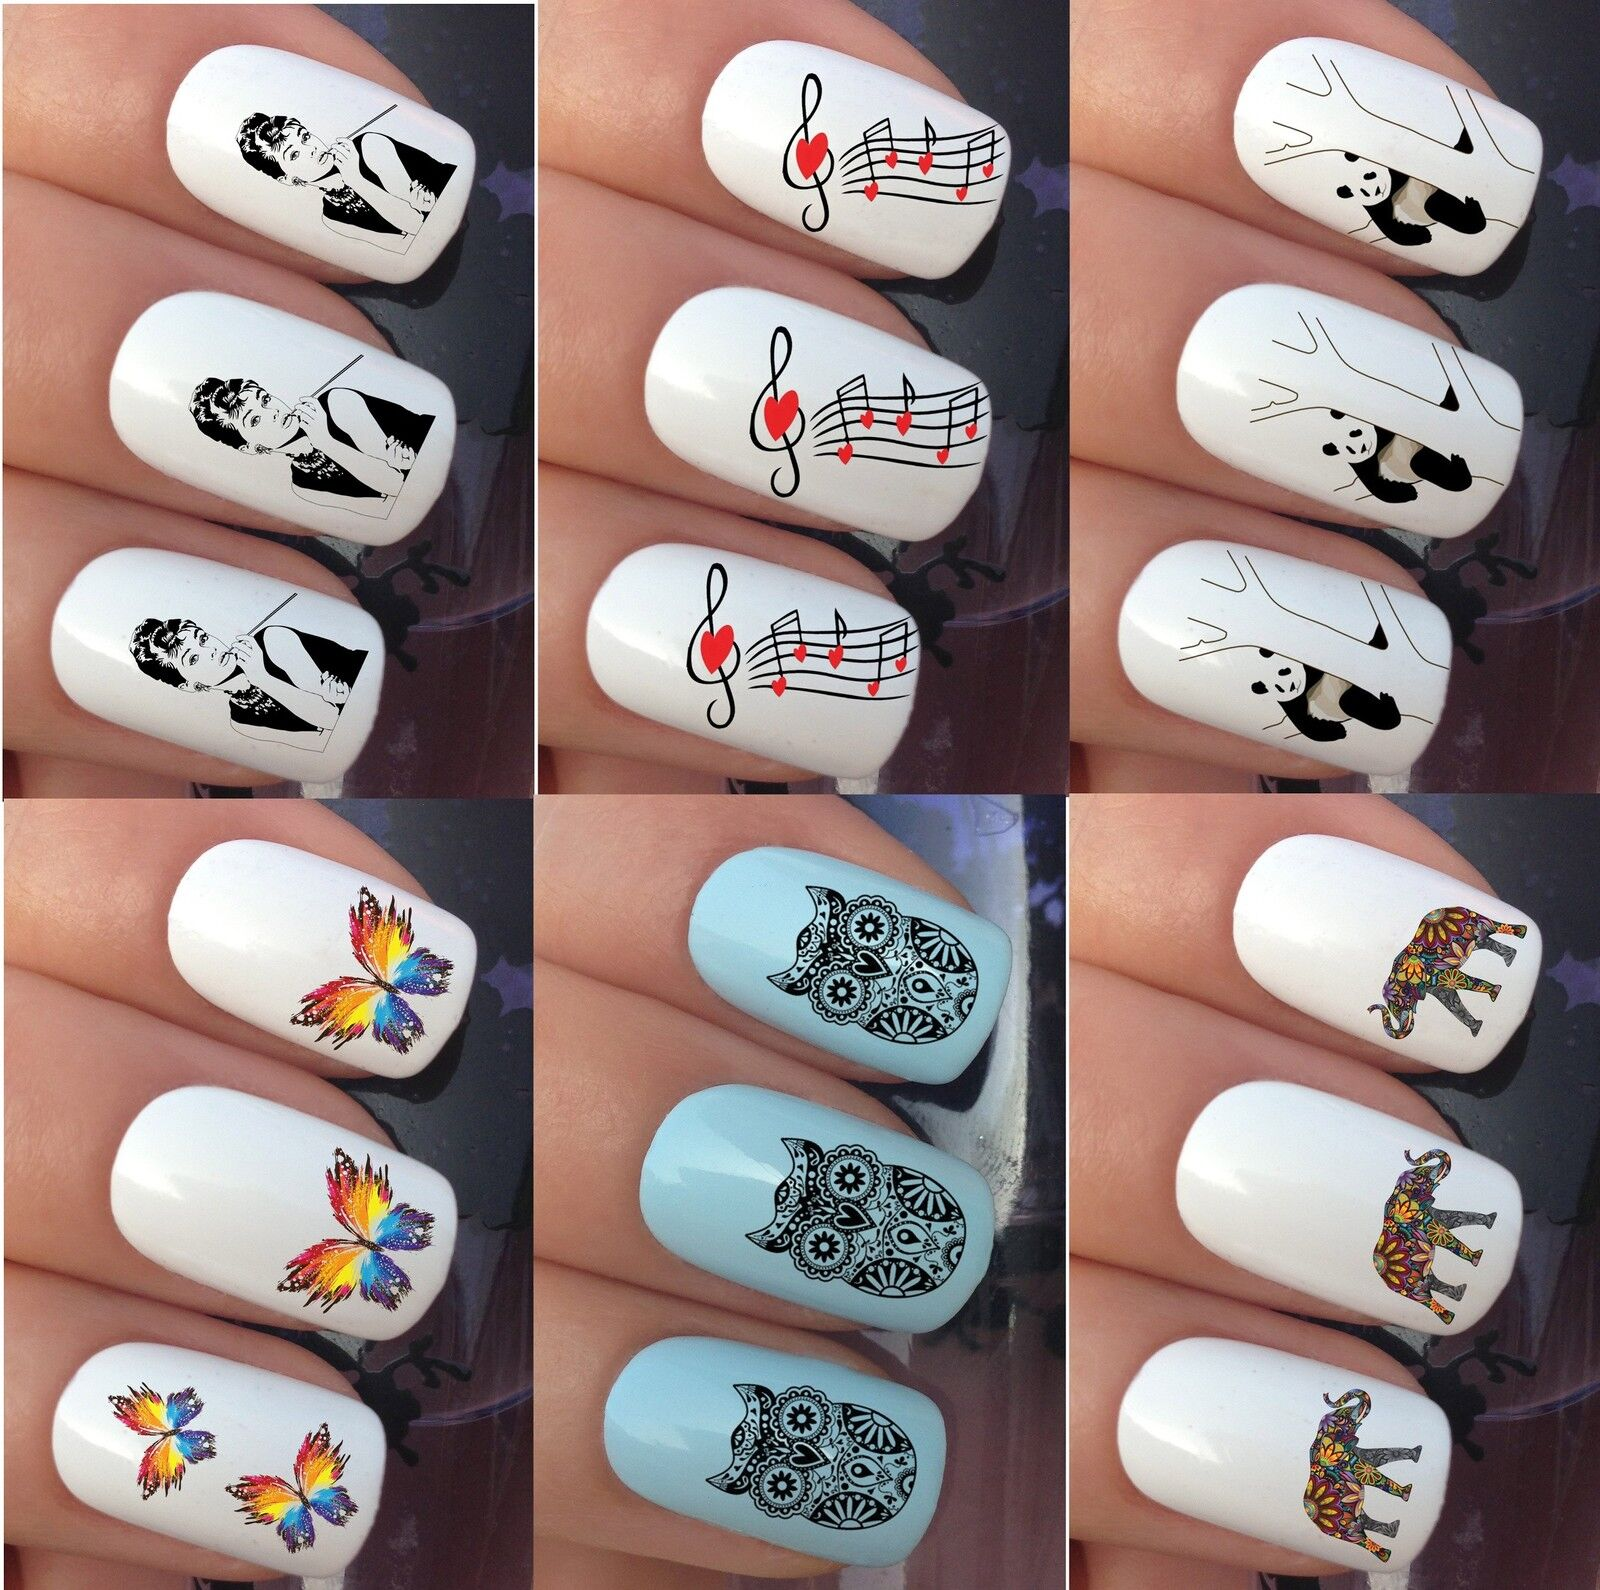 NAIL ART STICKERS Water Transfer Decals Wrap Panda Dog Butterfly Owl ...